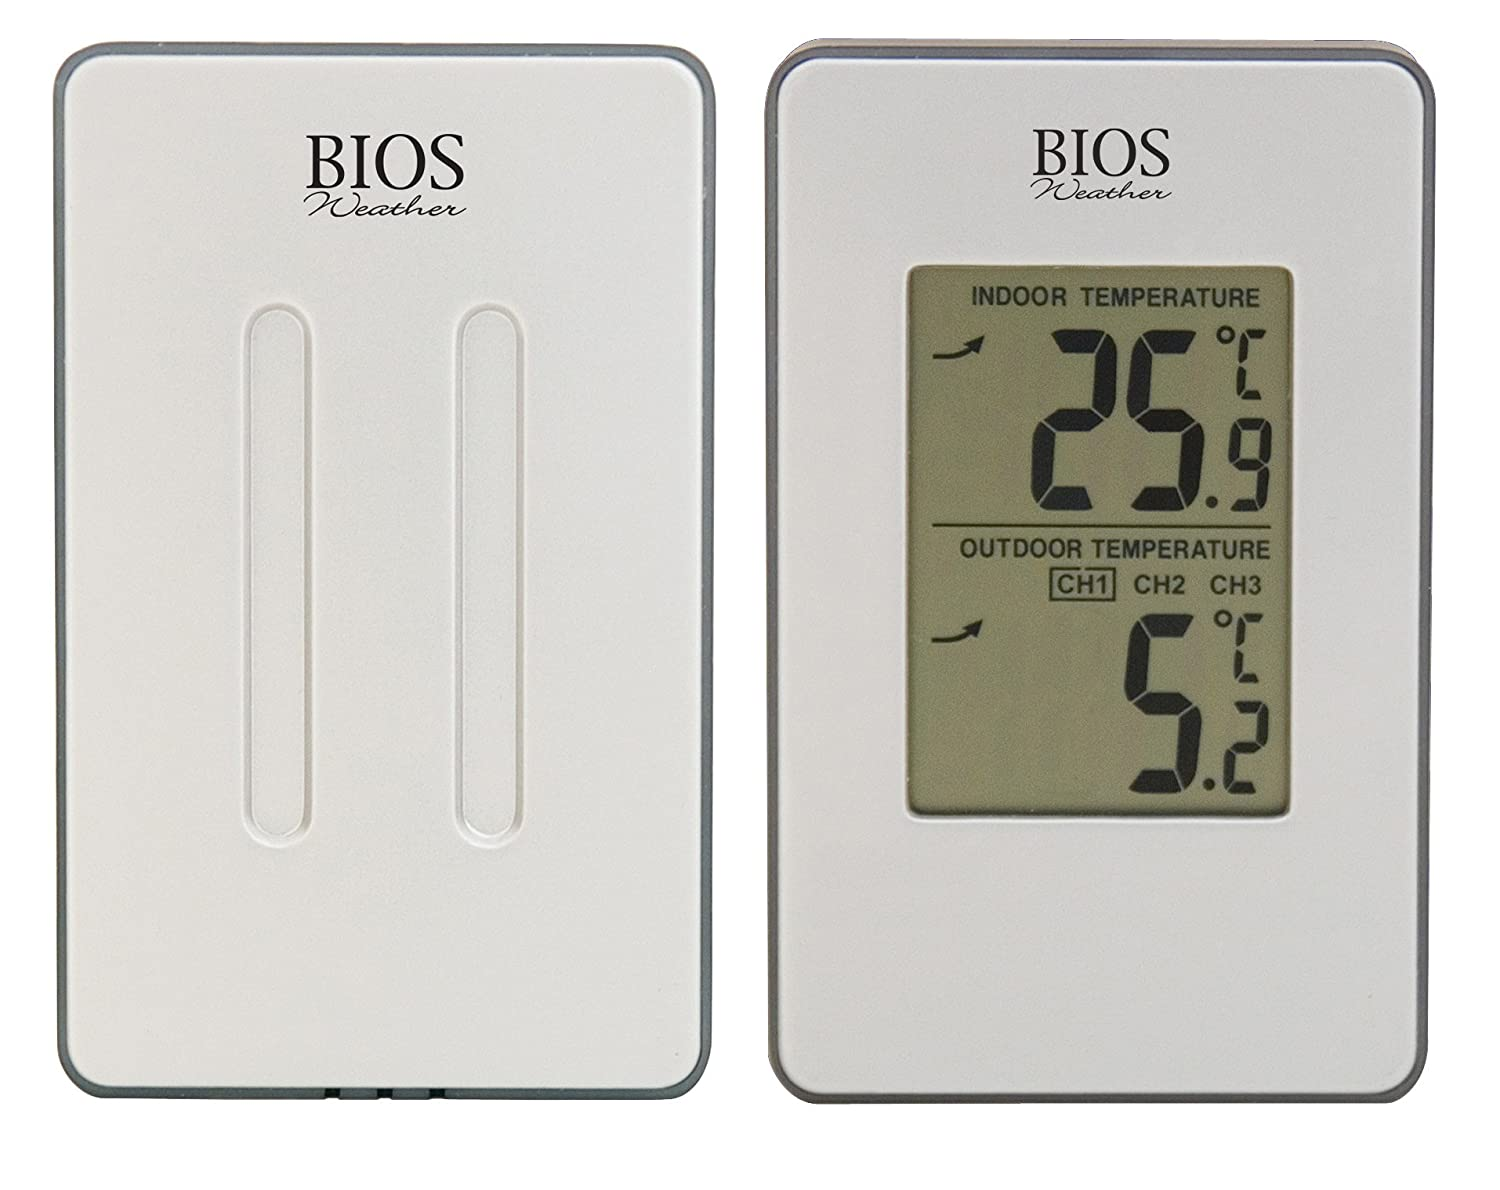 Amazon.com: Thermor Bios Indoor/Outdoor Wireless Thermometer ...